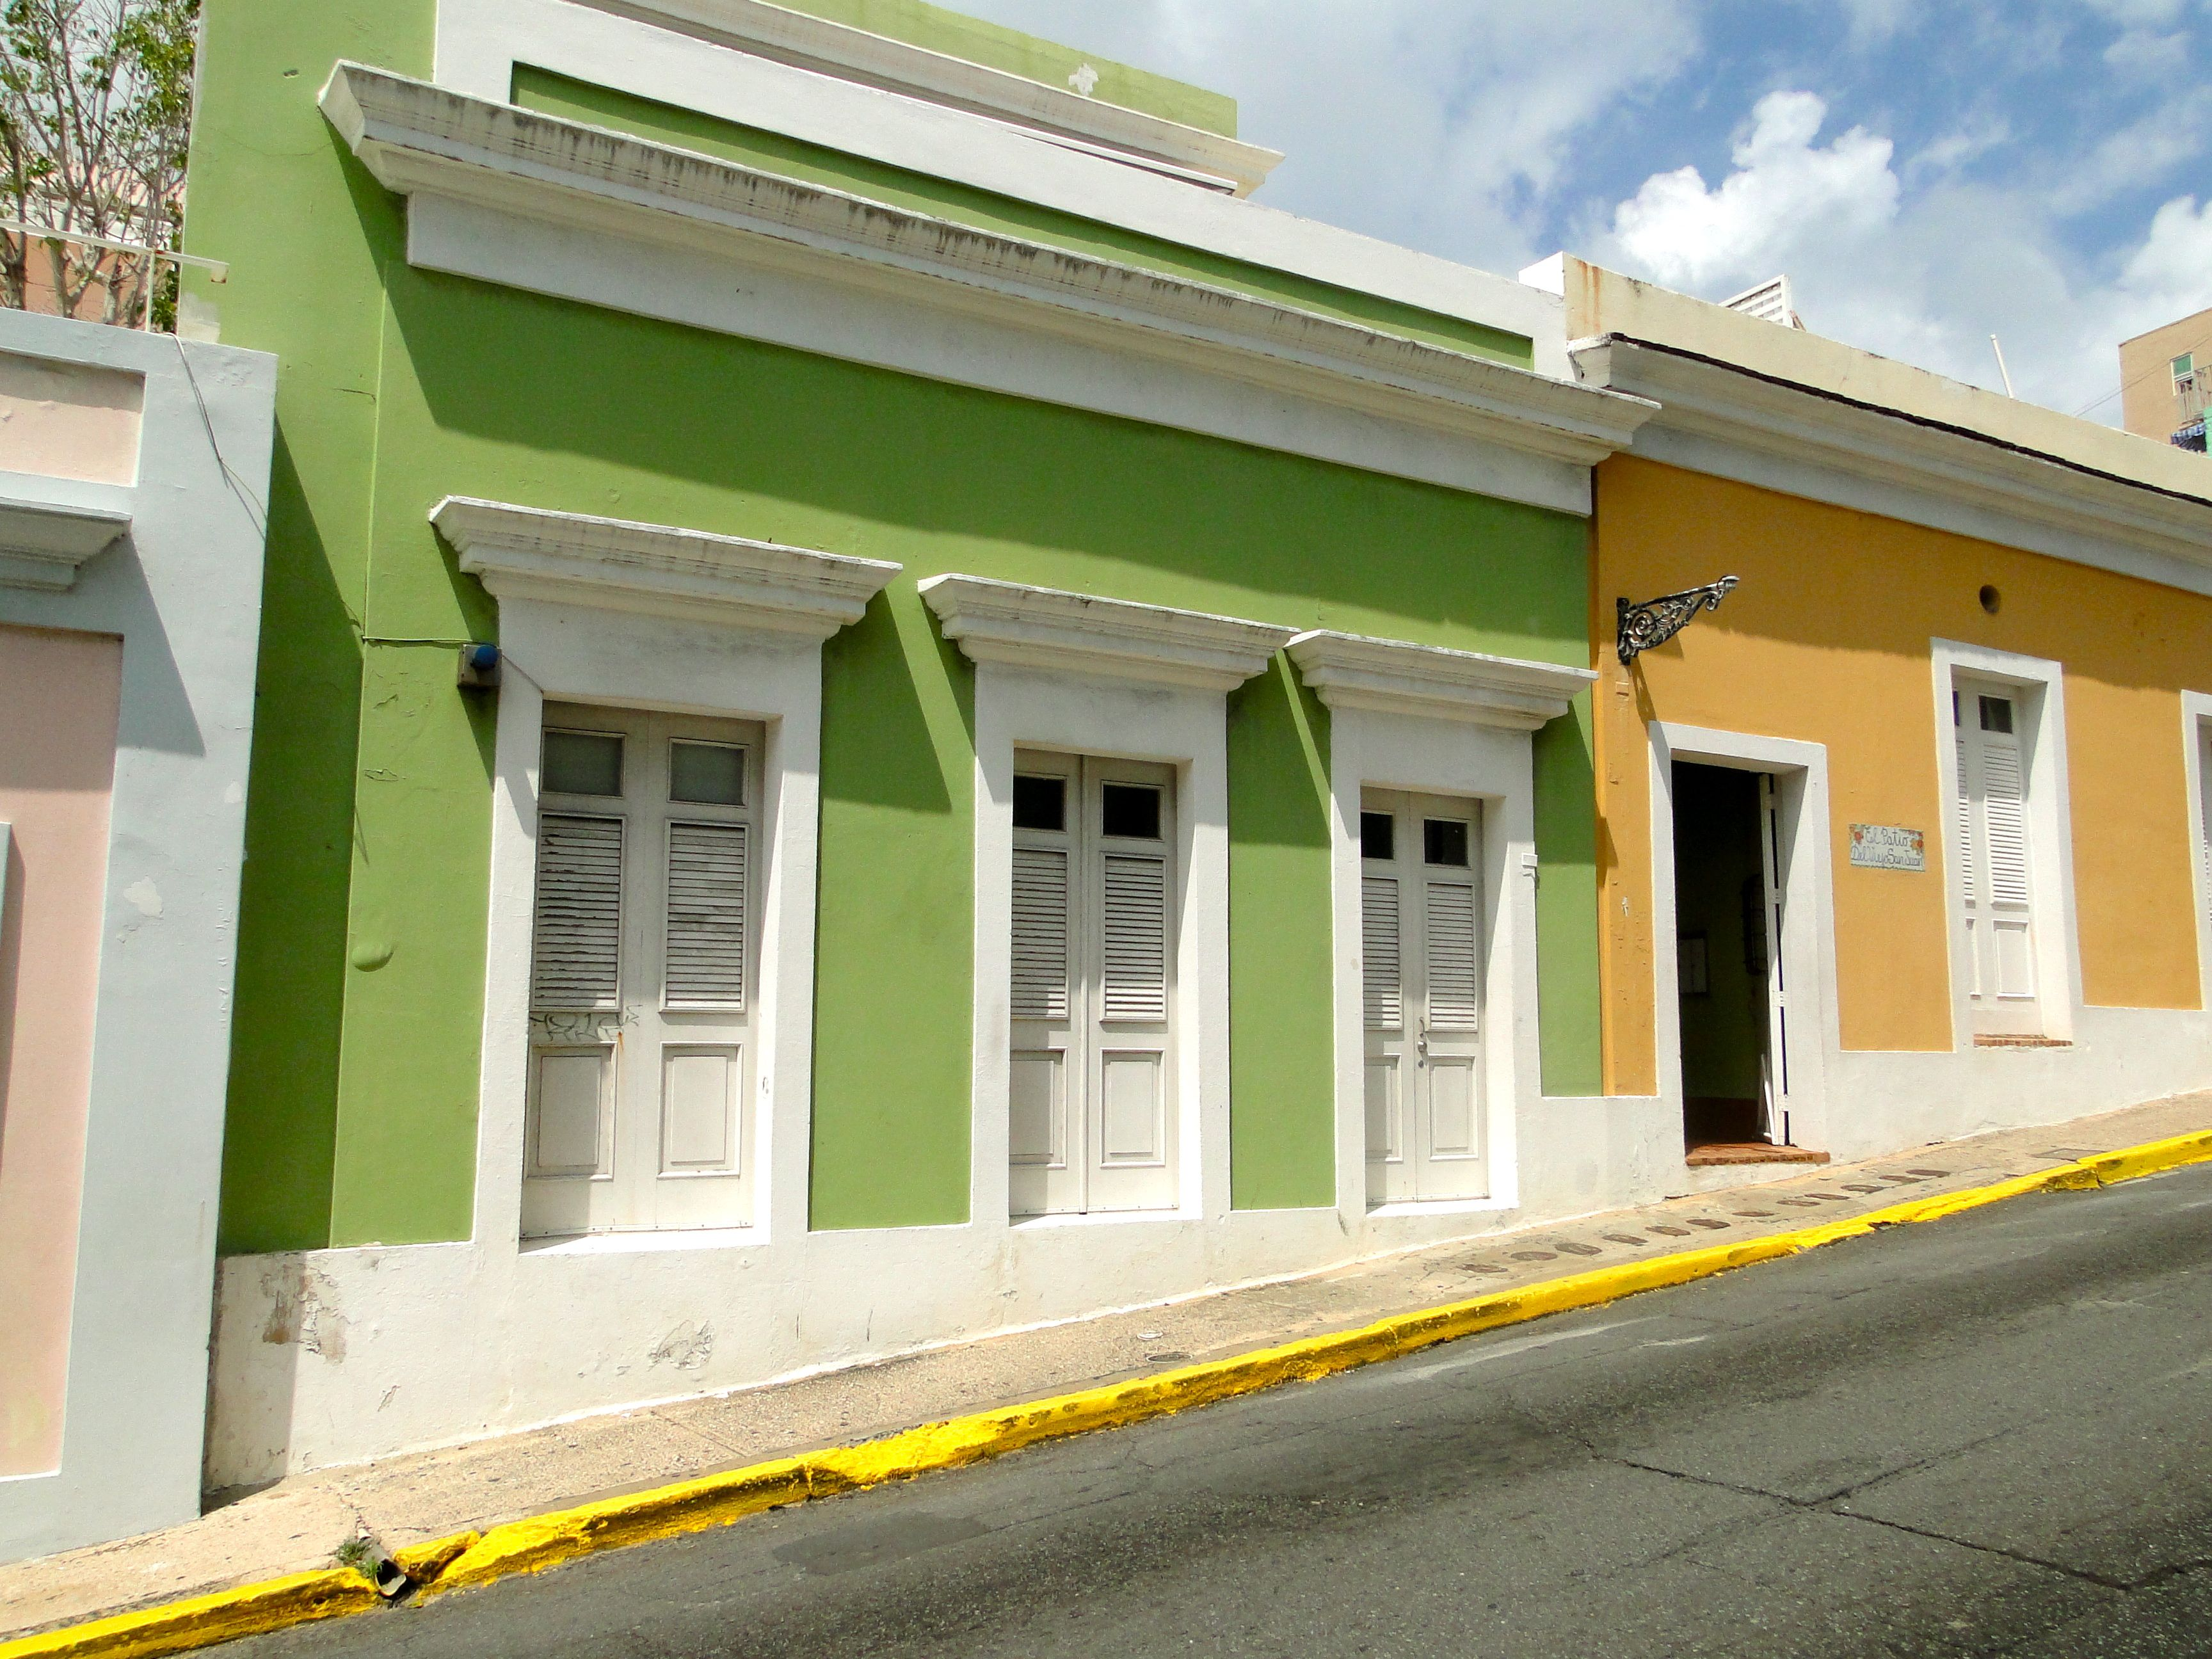 Colorful homes in Old San Juan, Puerto Rico.